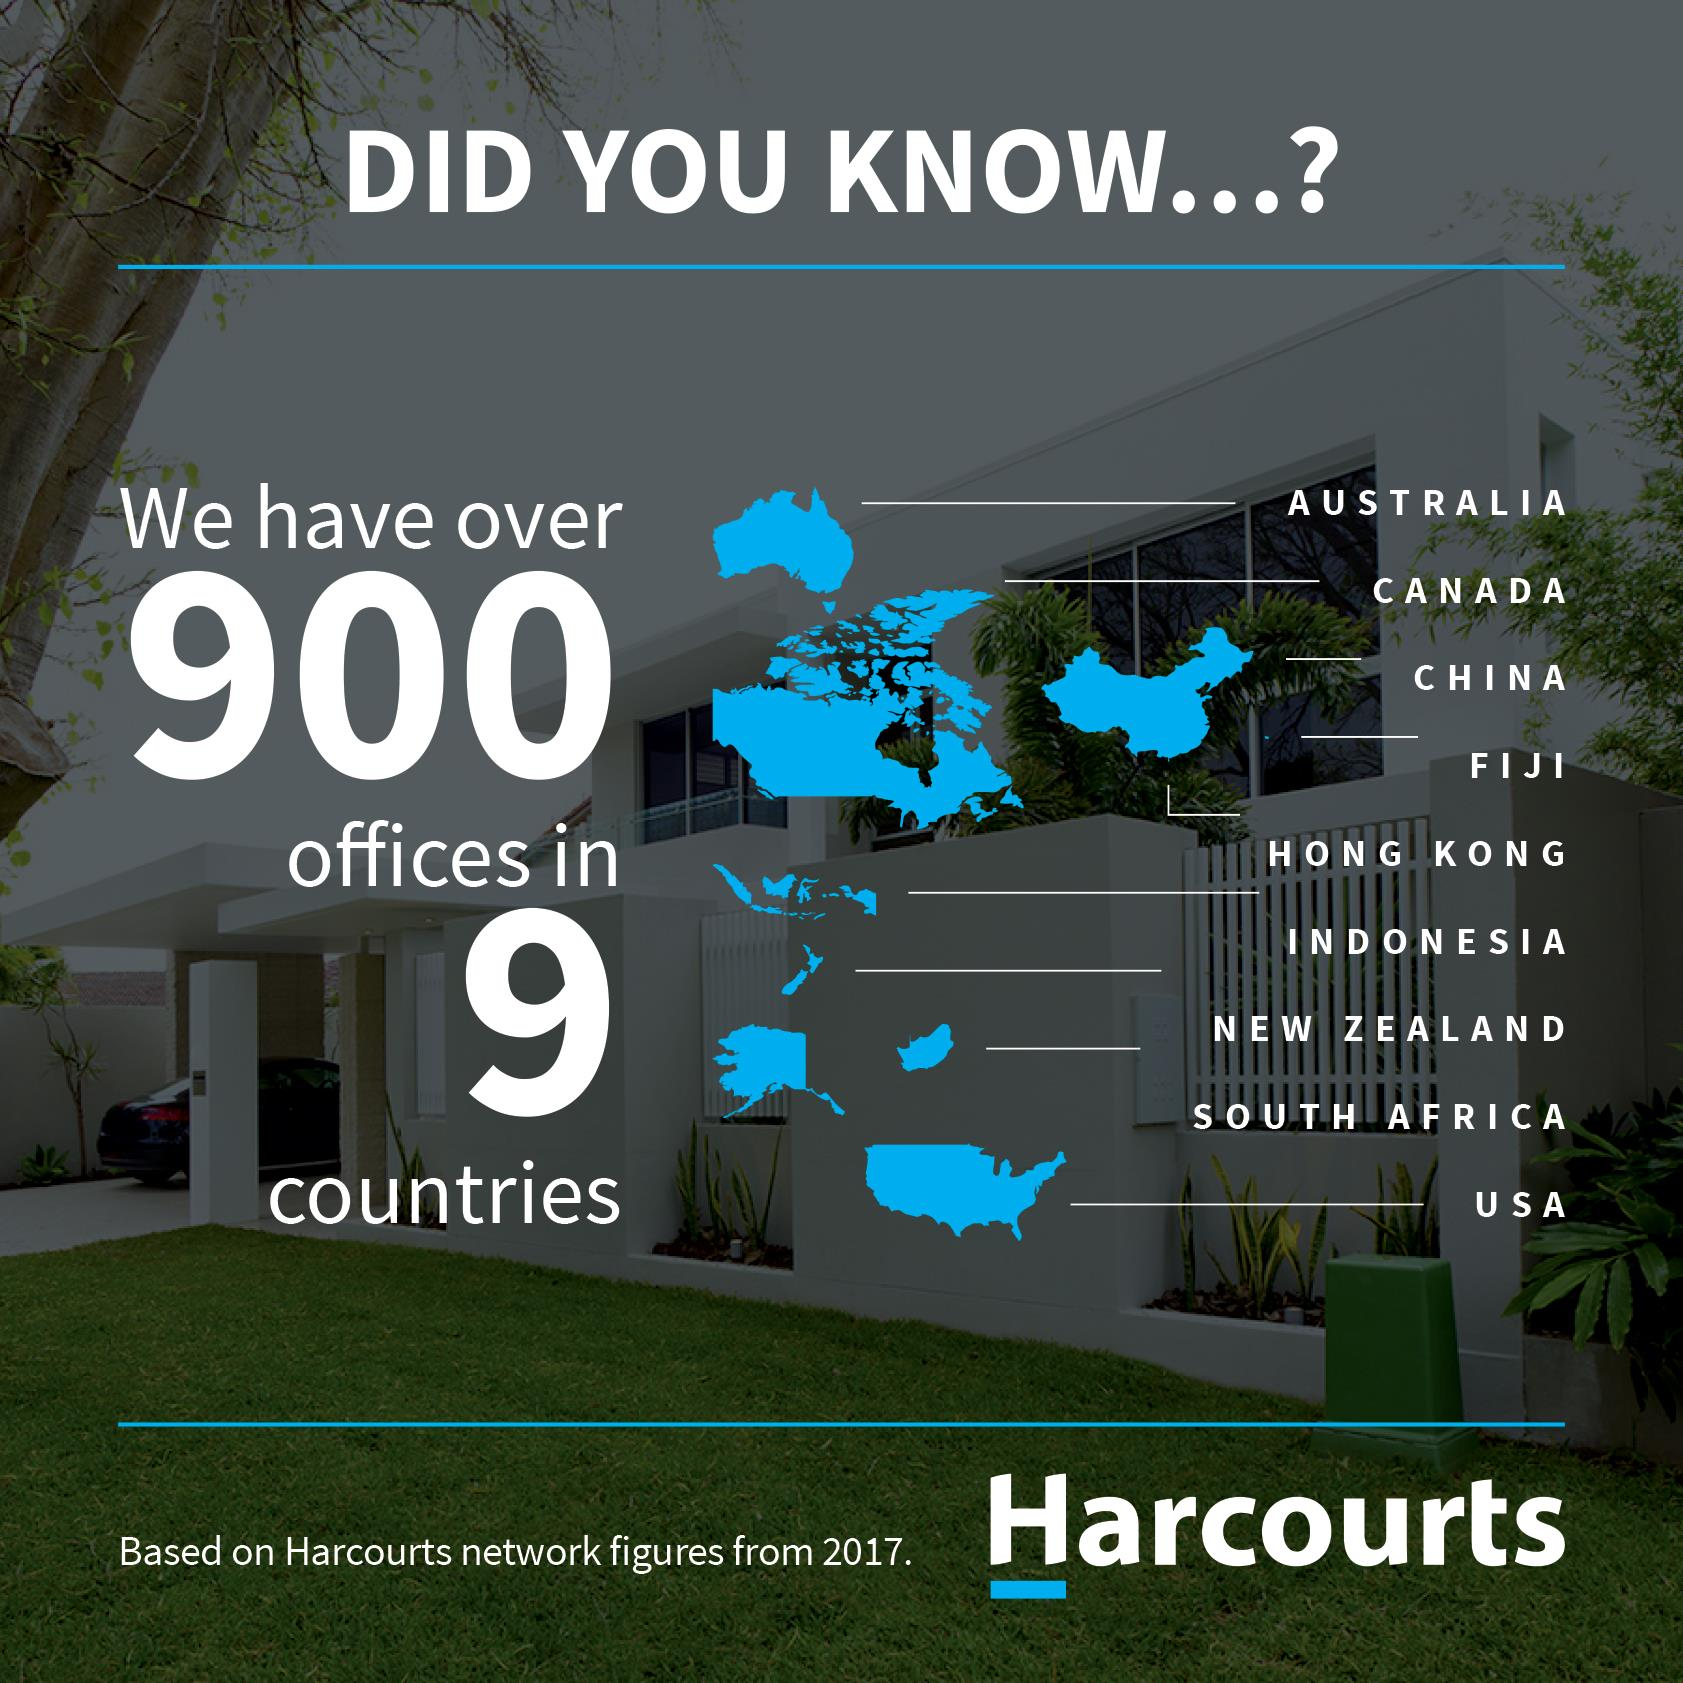 Harcourts have over 900 offices in 9 countries